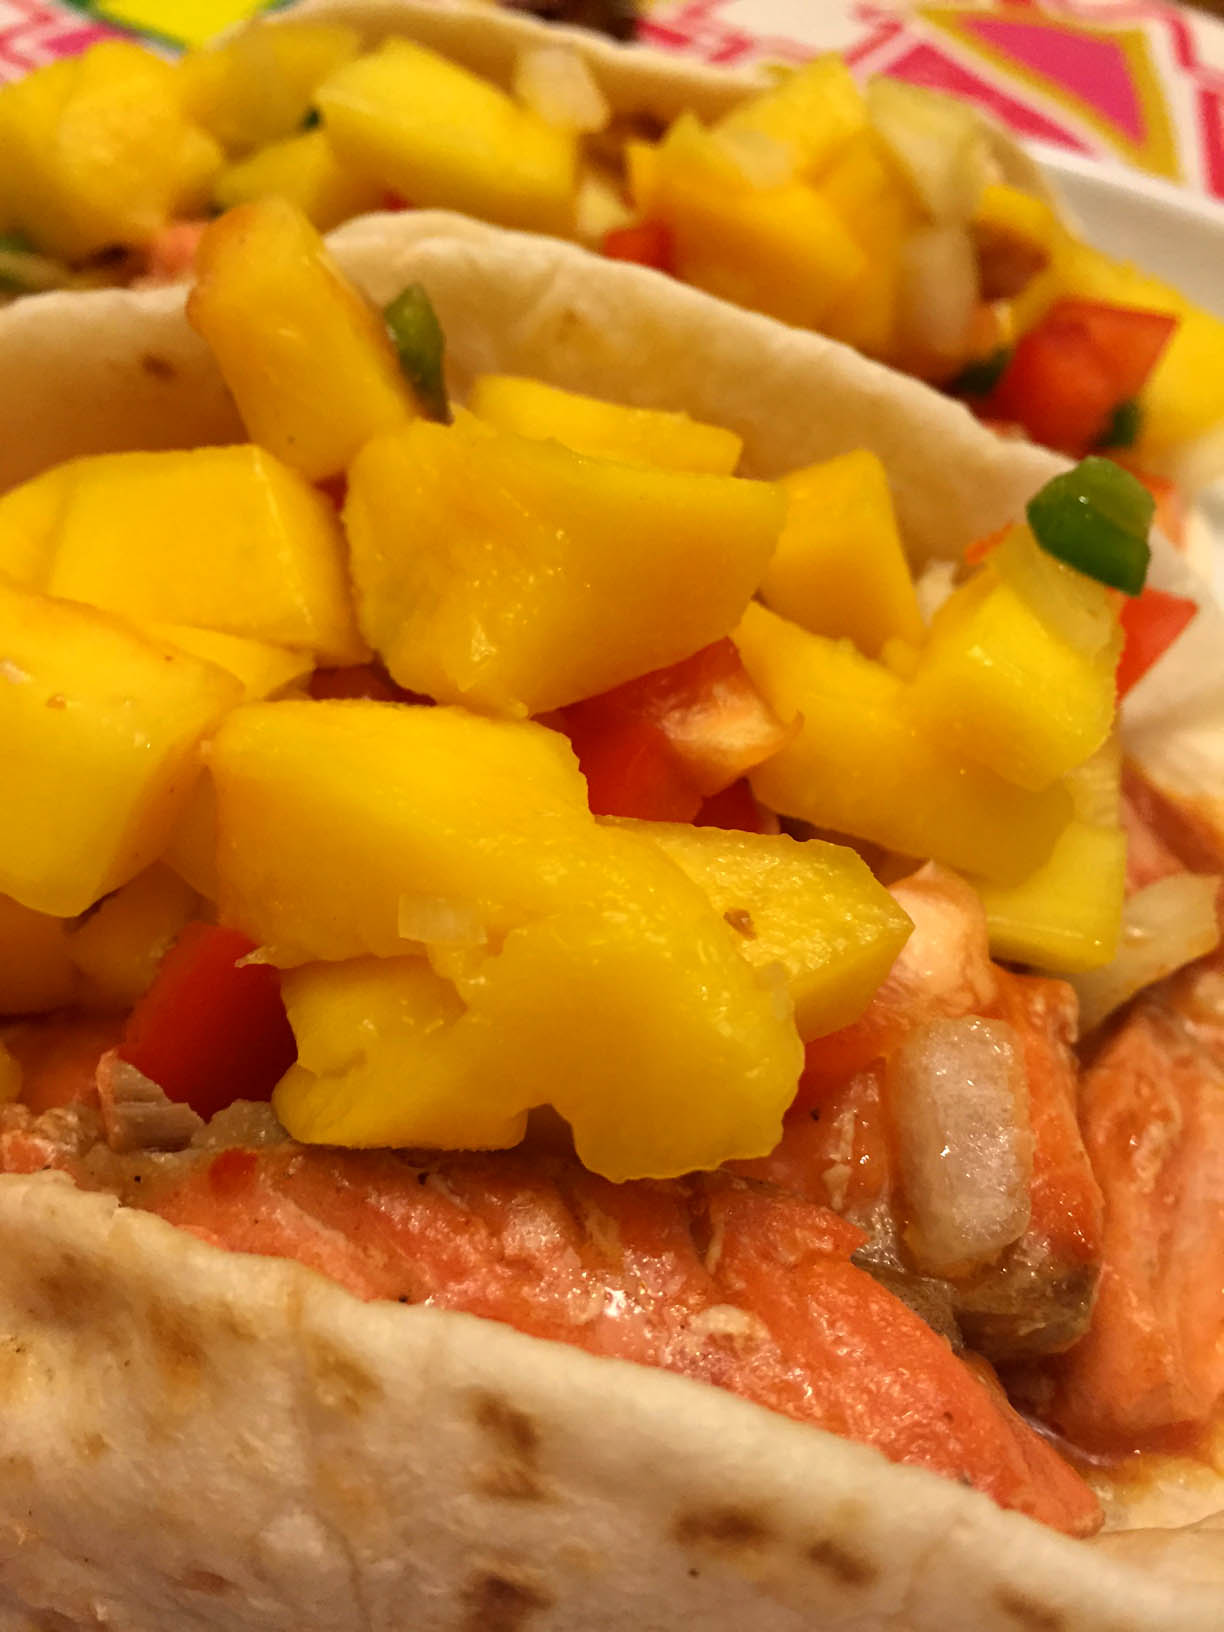 Easy Fish Tacos Recipe With Mango Salsa - So Delicious!